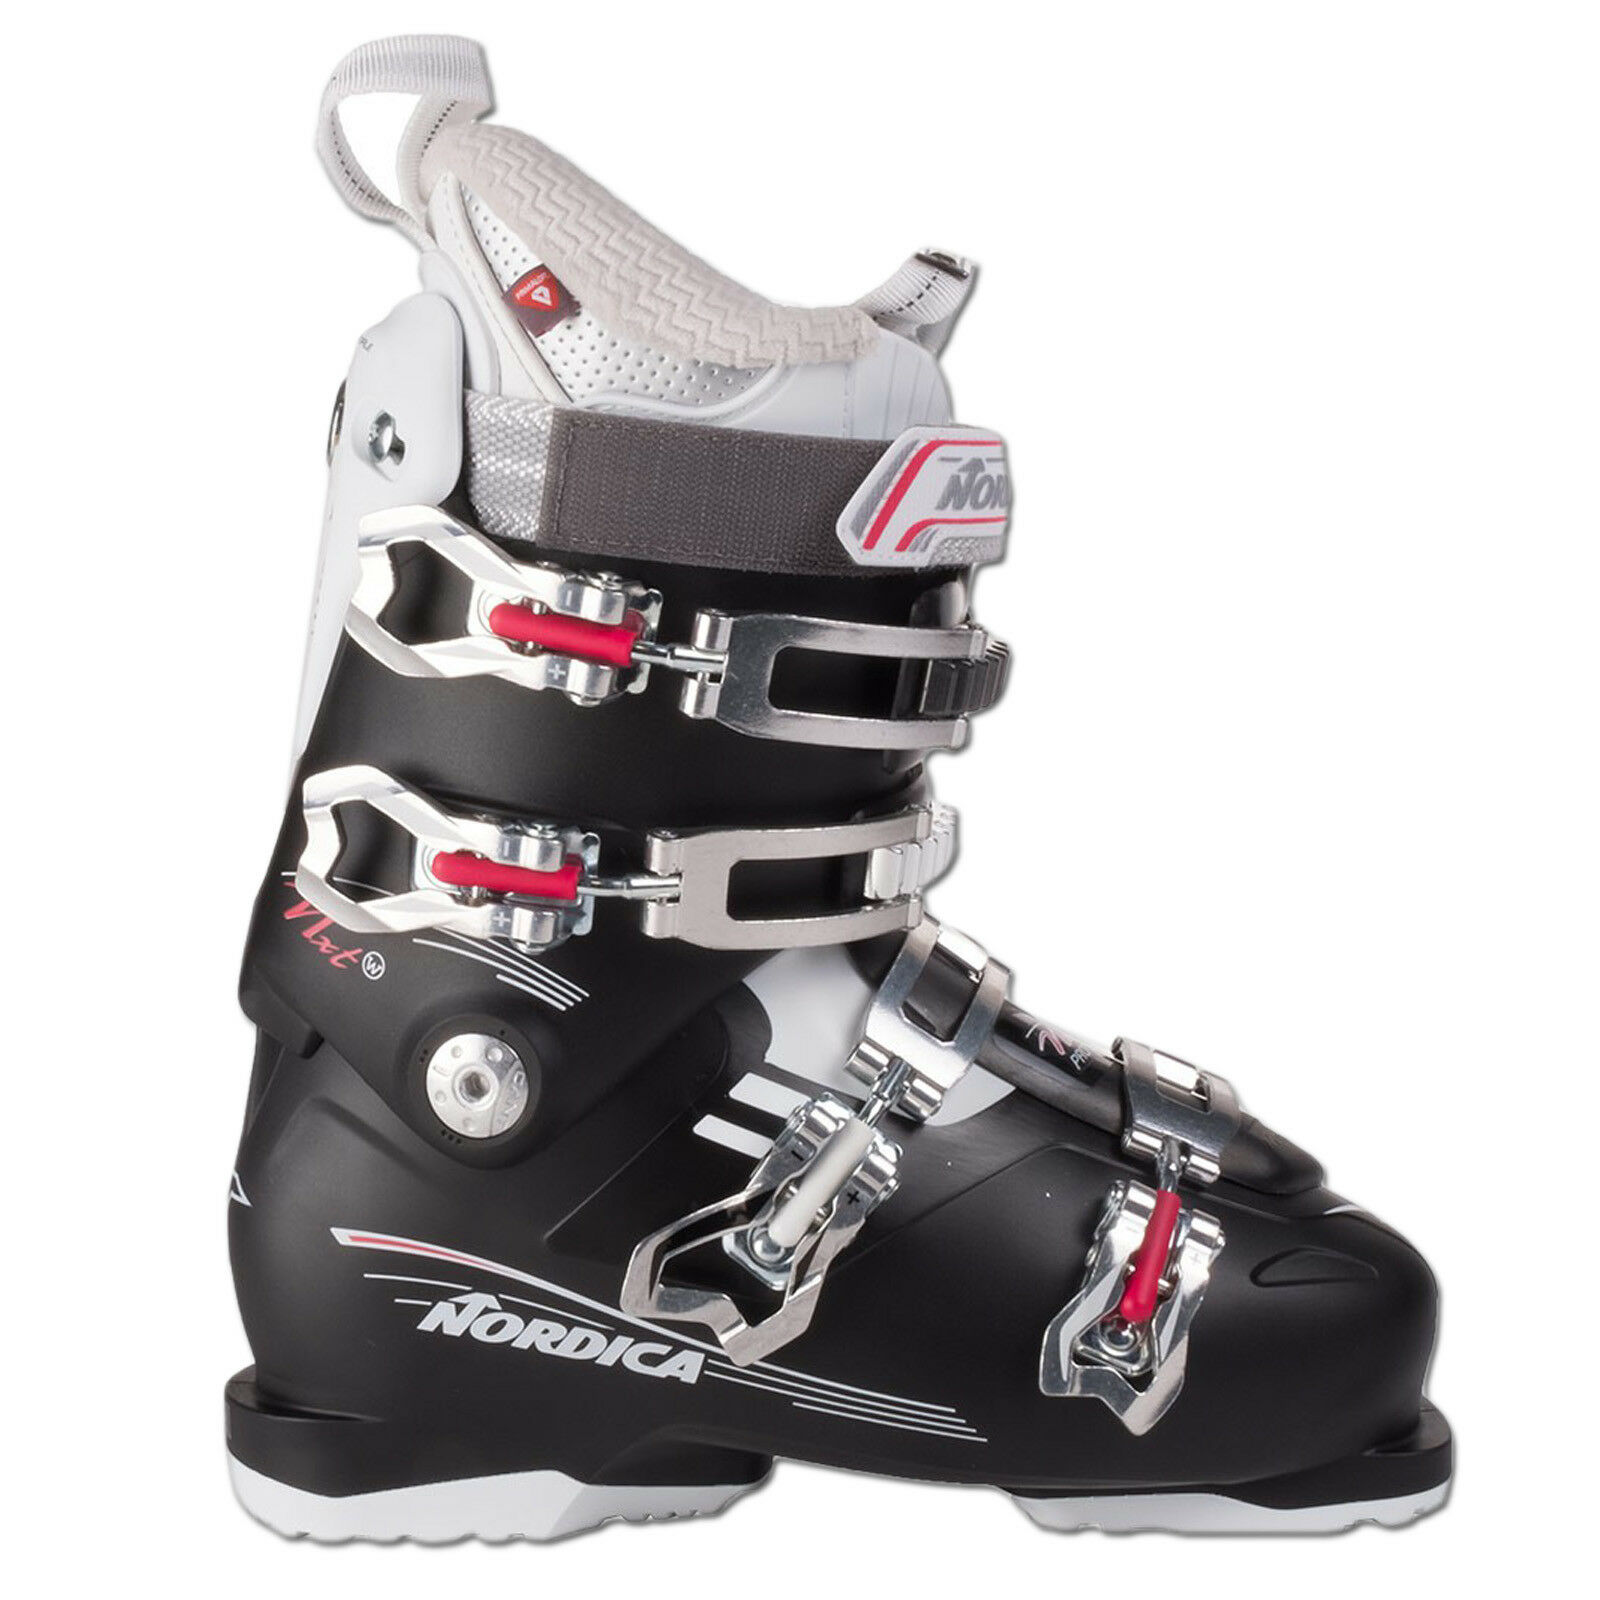 Nordica Nxt pro 75 Berry 2018 27,5 =42,5 Eu Women's Ski Boots shoes Boat